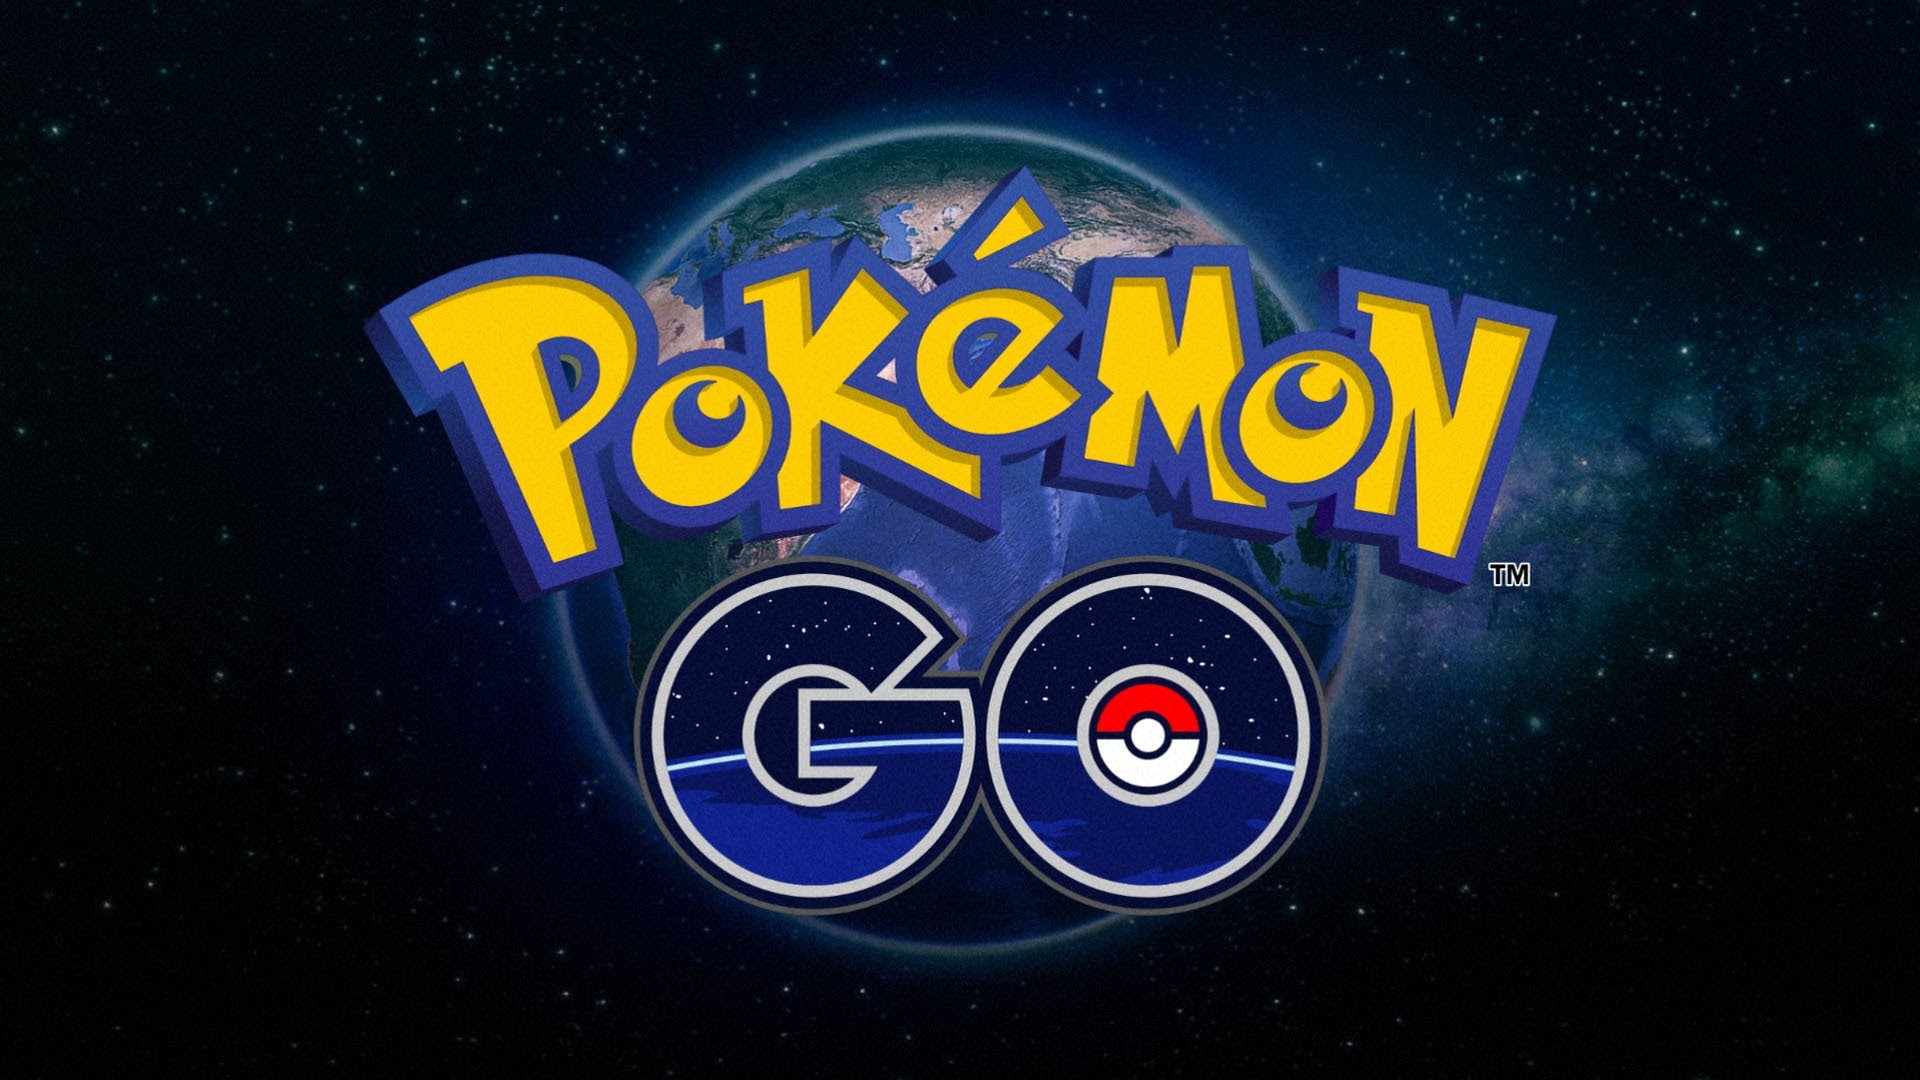 1920x1080 Should the Government Regulate Your 'Pokemon GO' and AR Gaming? |  TouchArcade